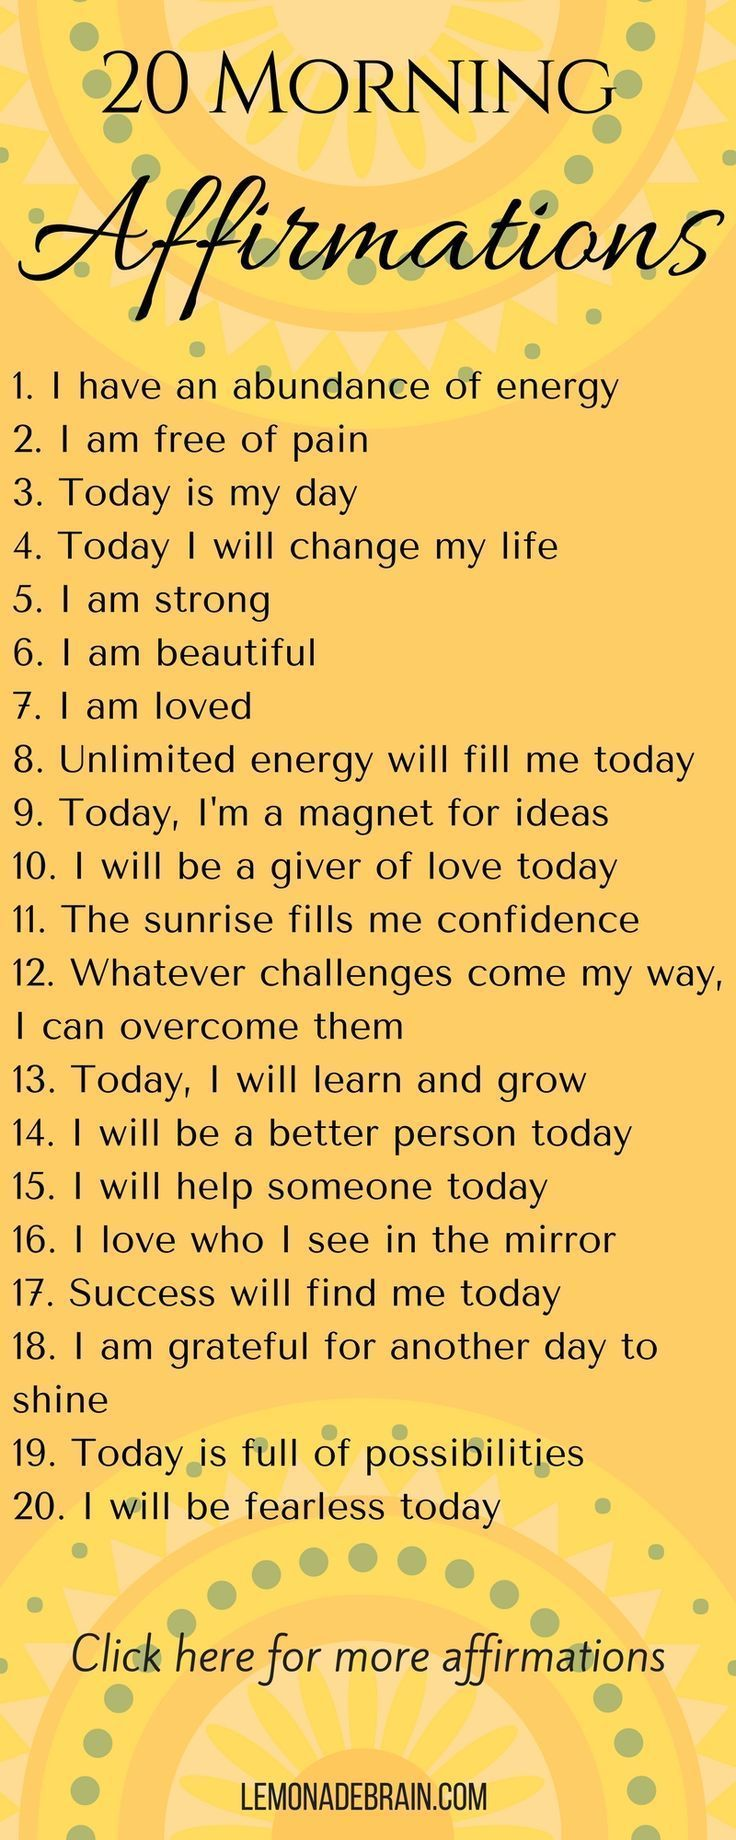 Affirmations: Use Positive Daily Affirmations – Victoria D